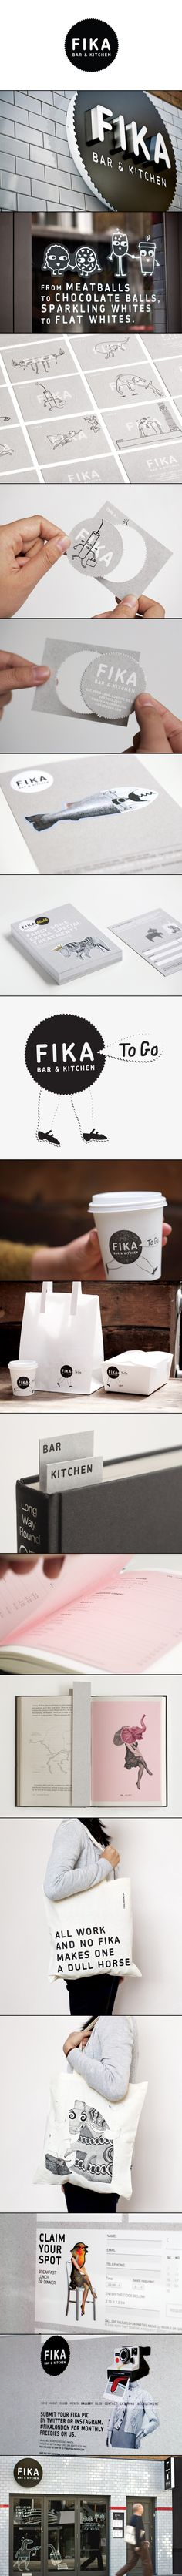 New Brand Identity for Fika by Designers Anonymous - BP&O